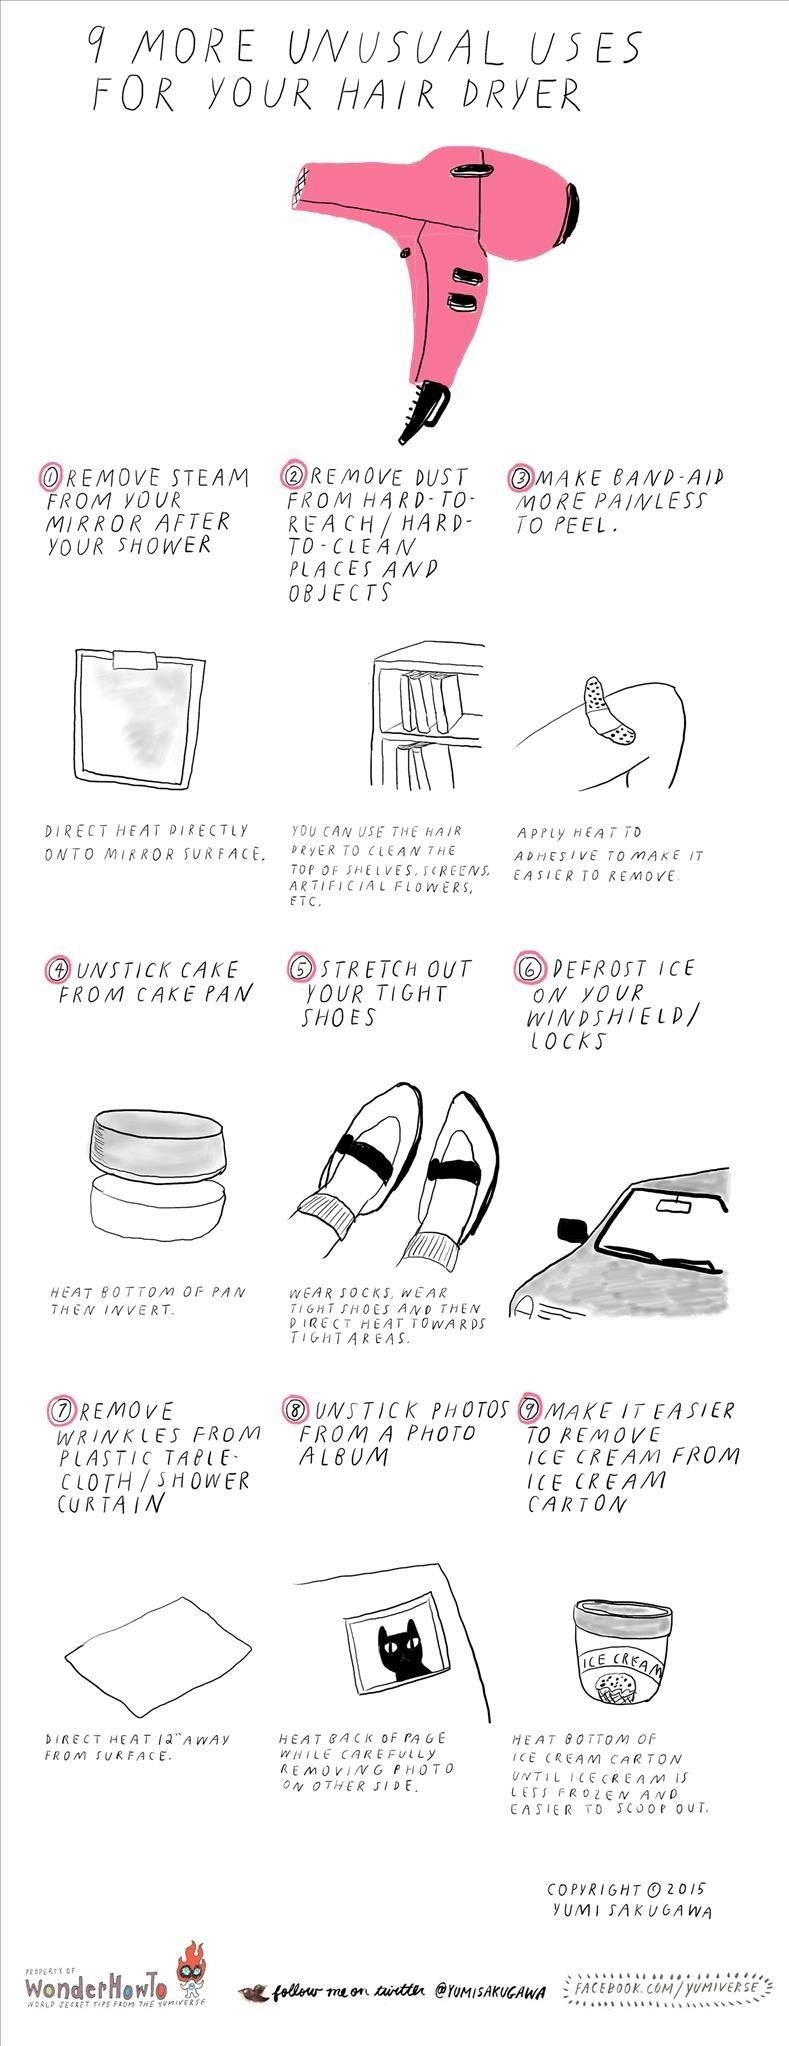 9 More Unusual Uses for Your Hair Dryer